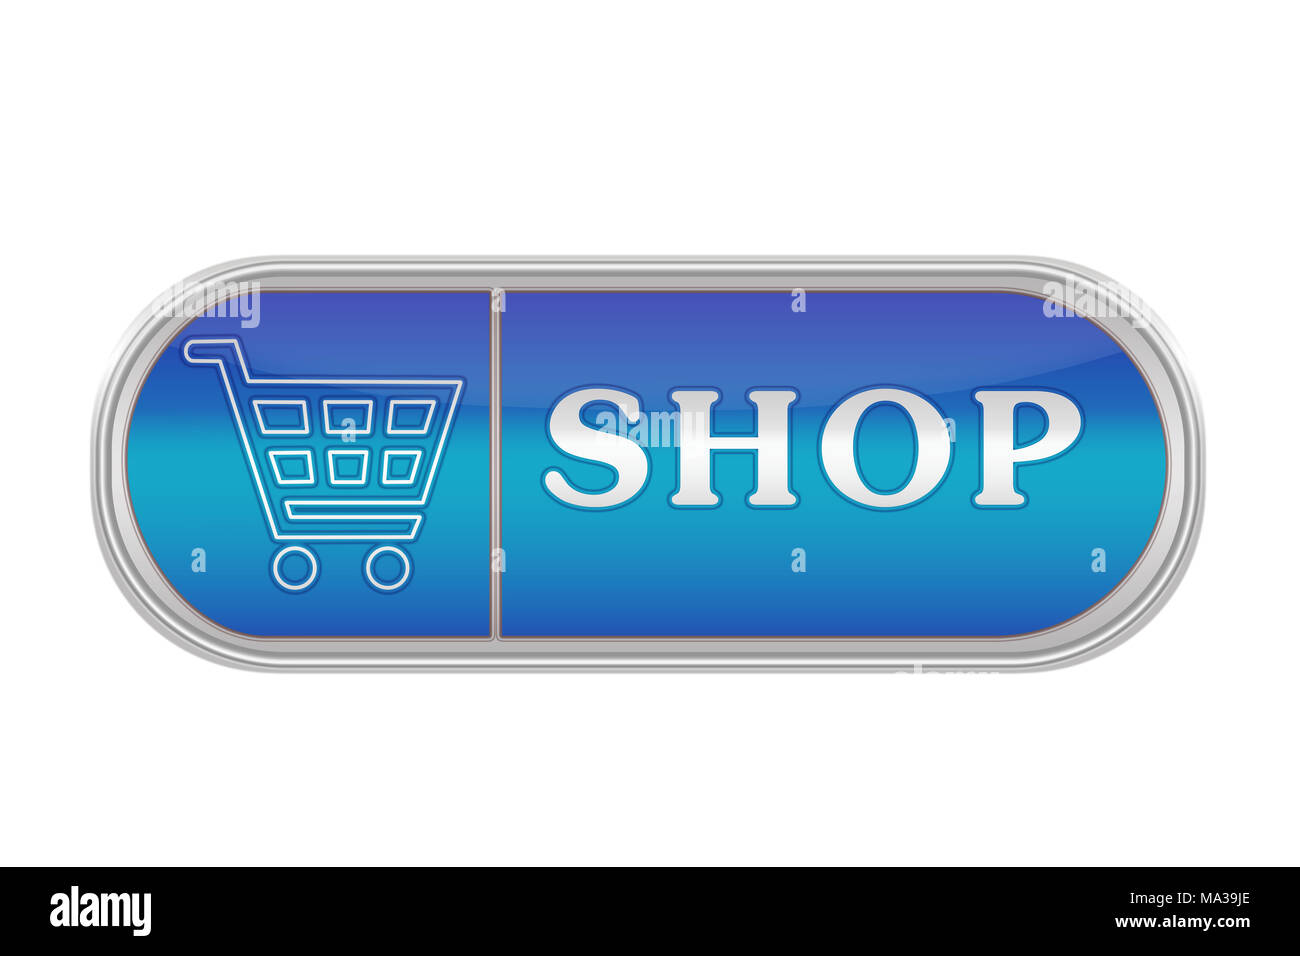 Oblong volume button of blue color with the icon and the inscription 'SHOP', white background - Stock Image